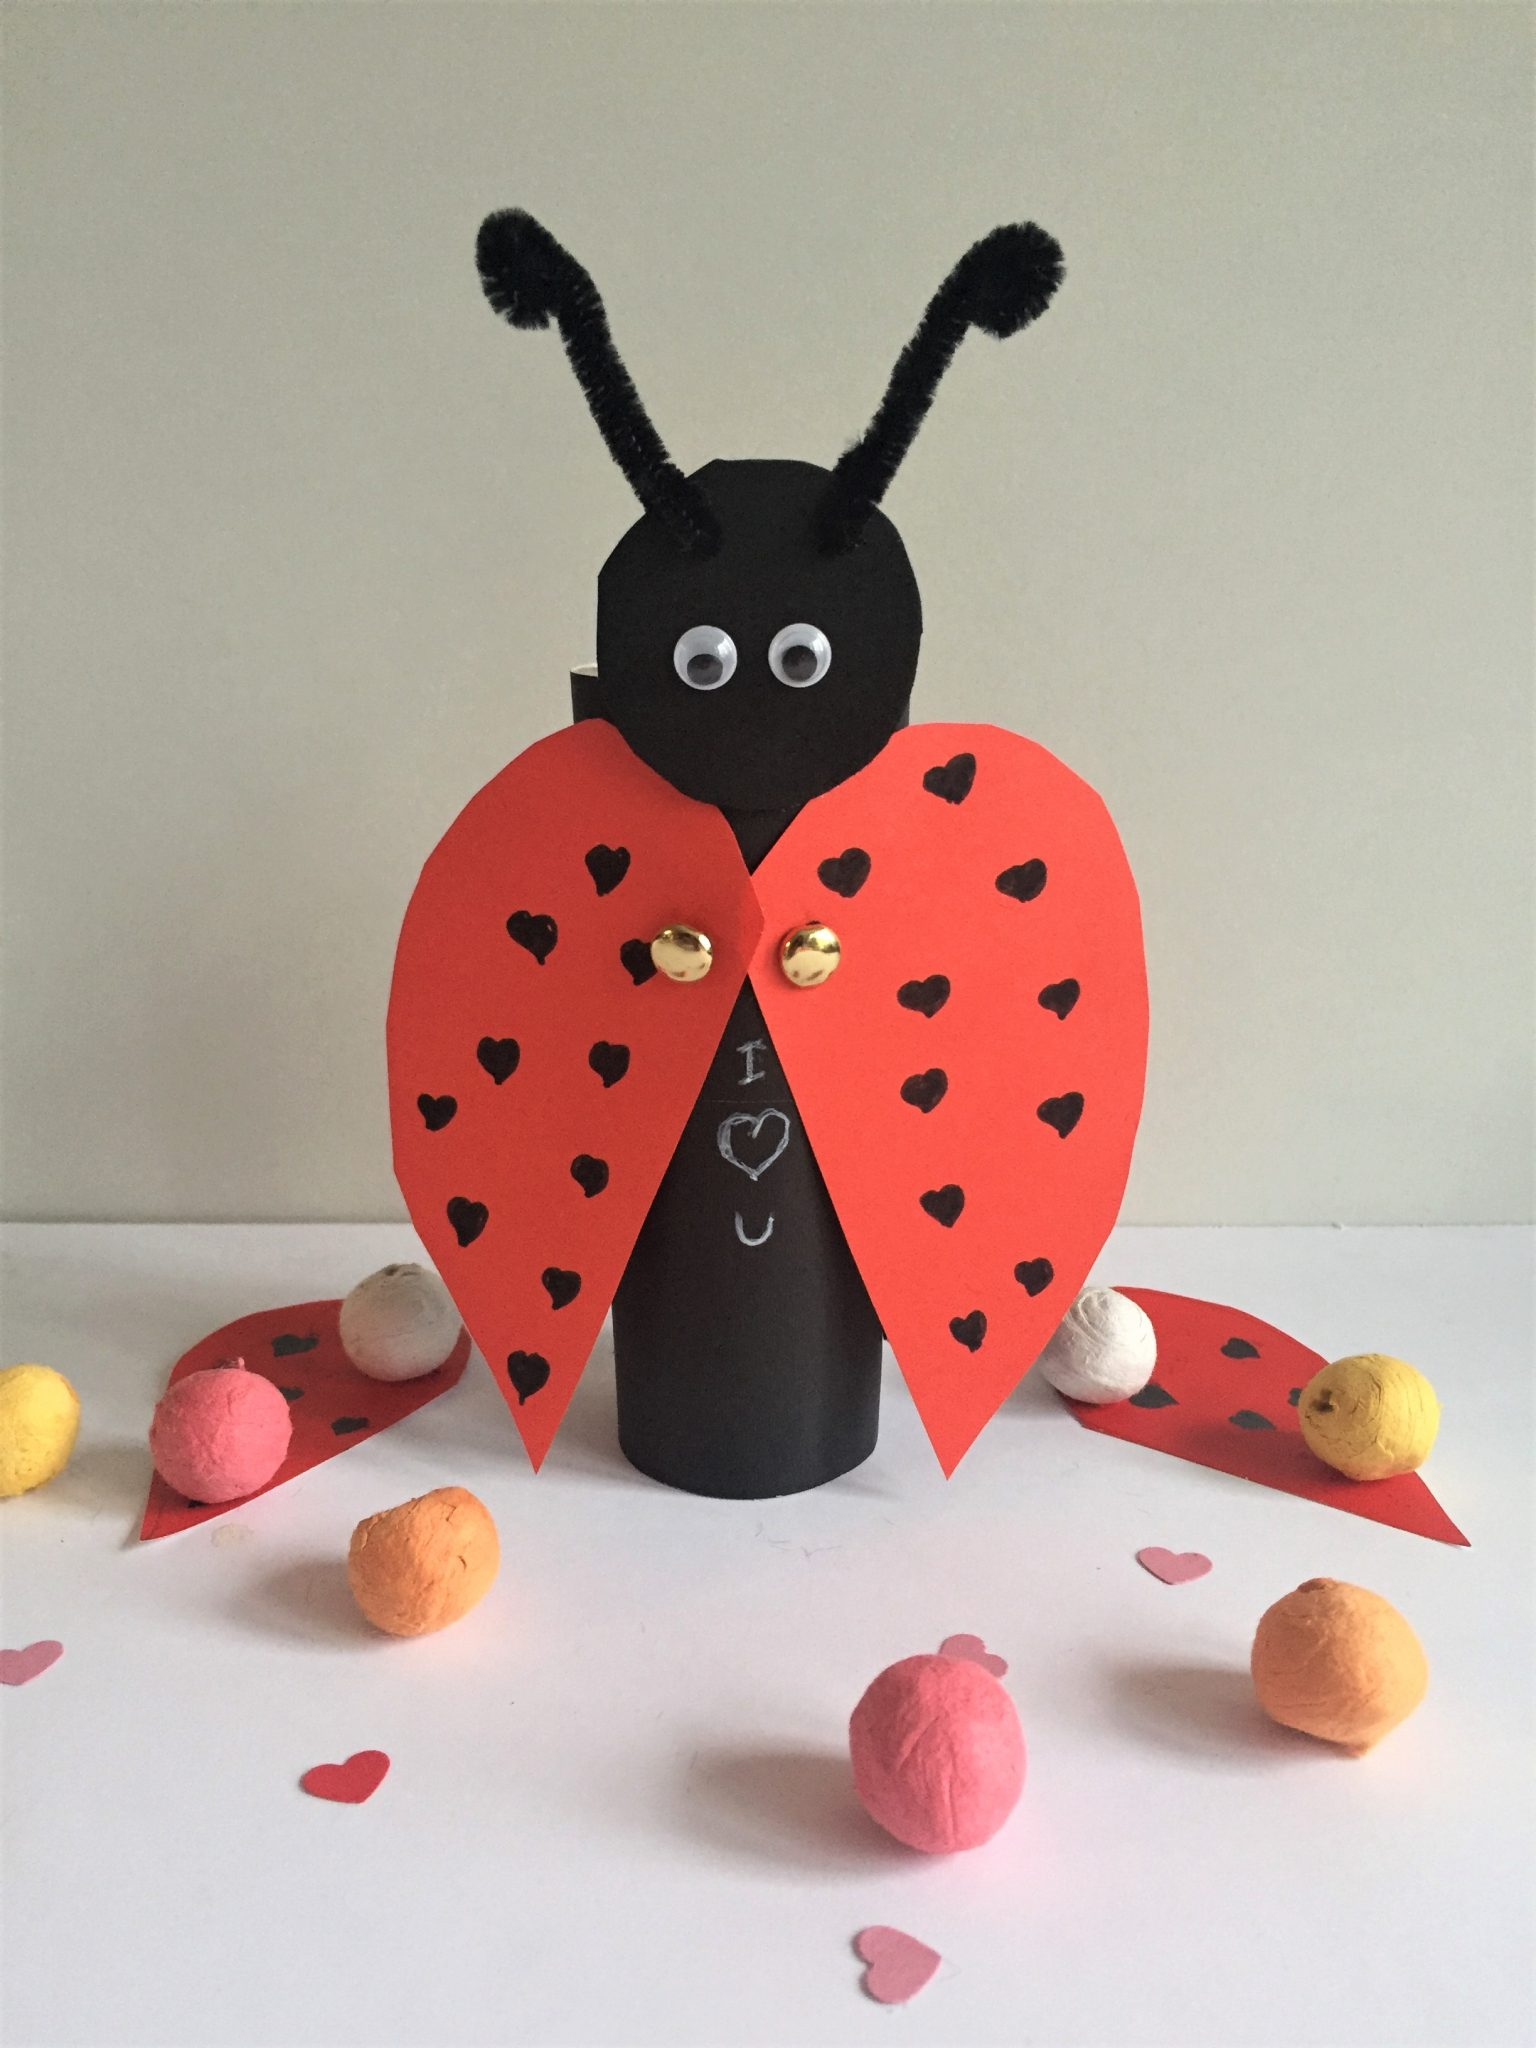 Toilet Paper Roll Ladybug Craft for Kids